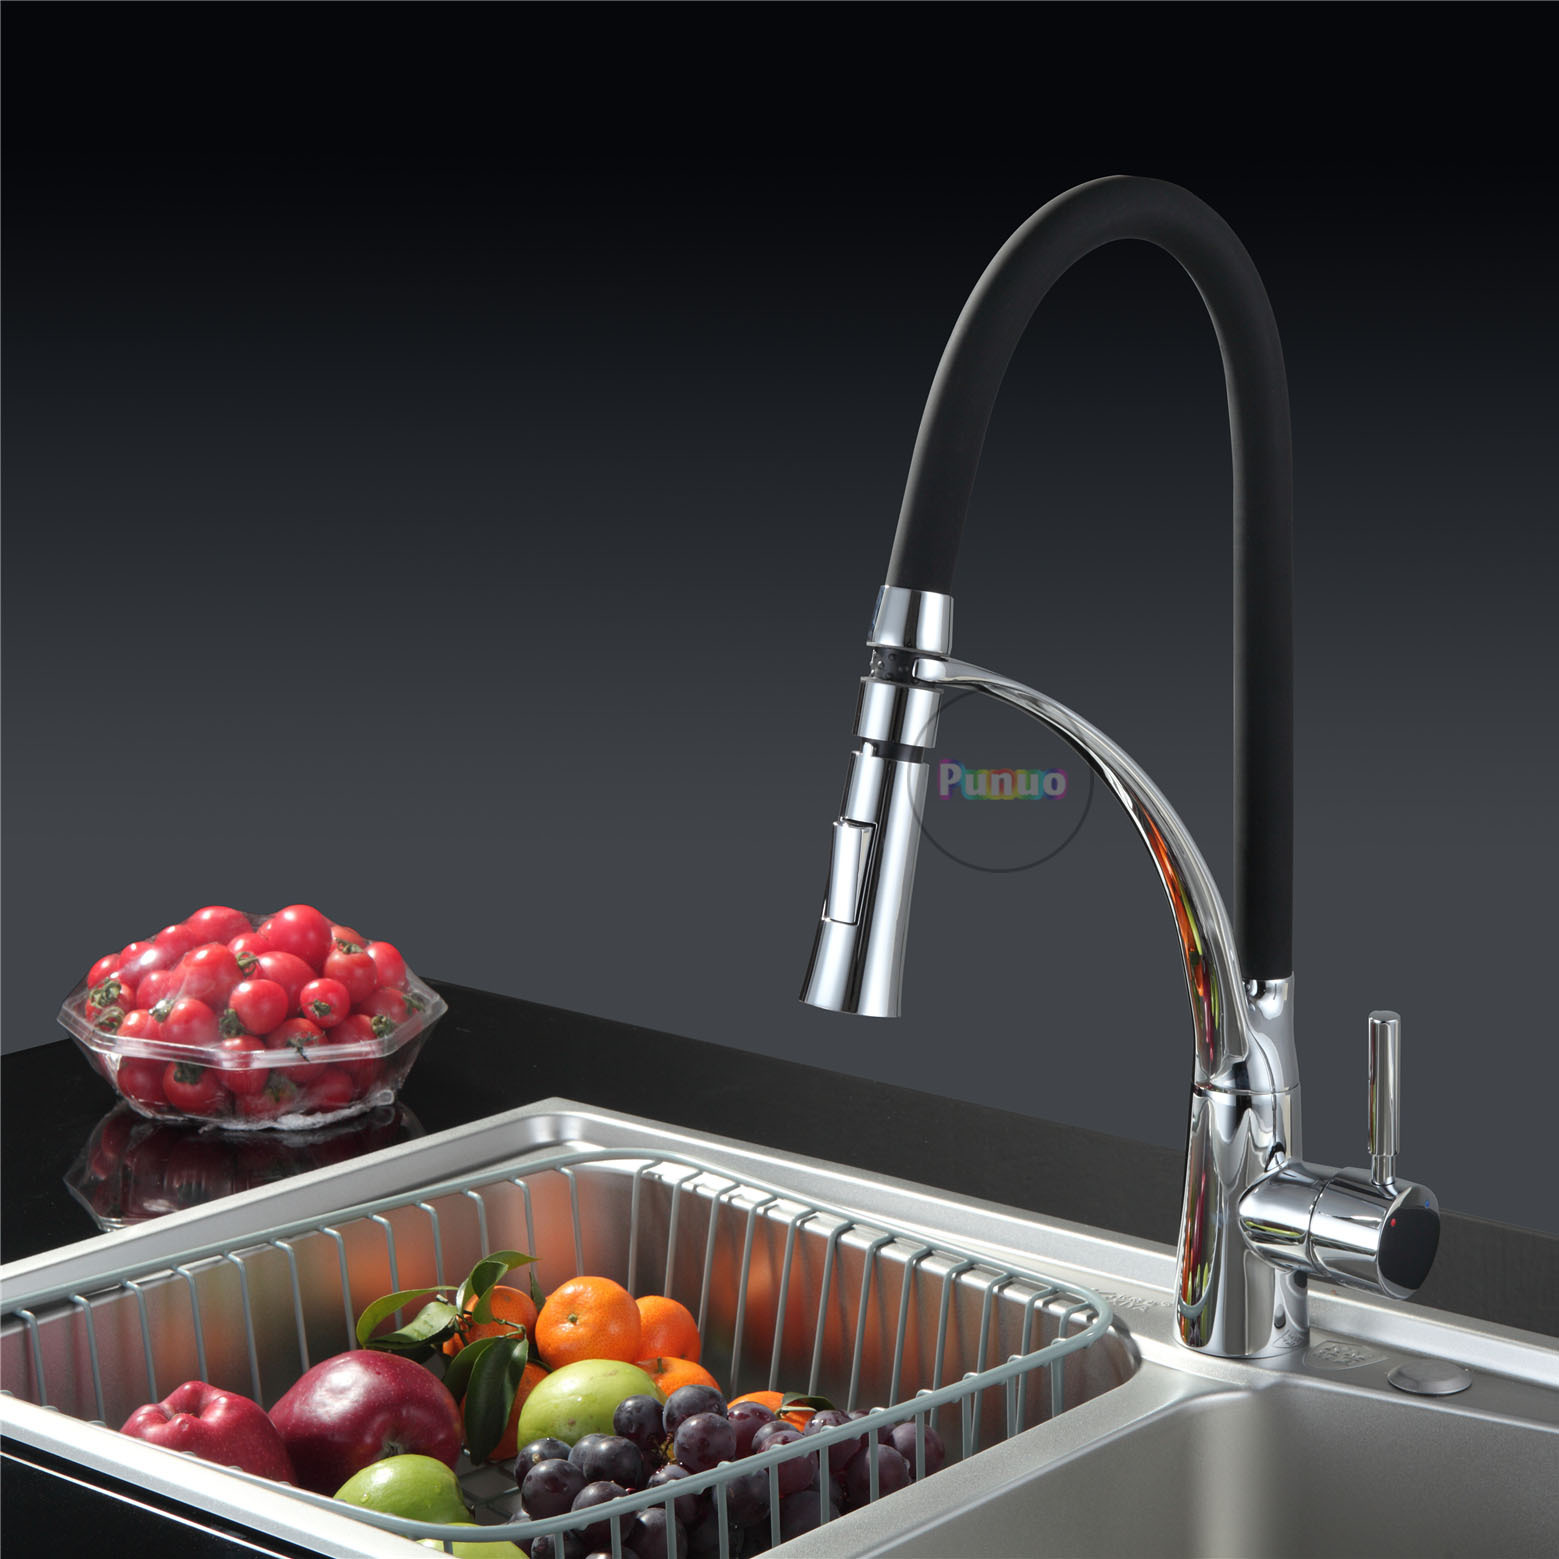 2016 Kitchen Faucet The New Kitchen Faucet Copper Color 360 Rotating Single Hole Cold Water Basin Factory Direct Wholesale(China (Mainland))